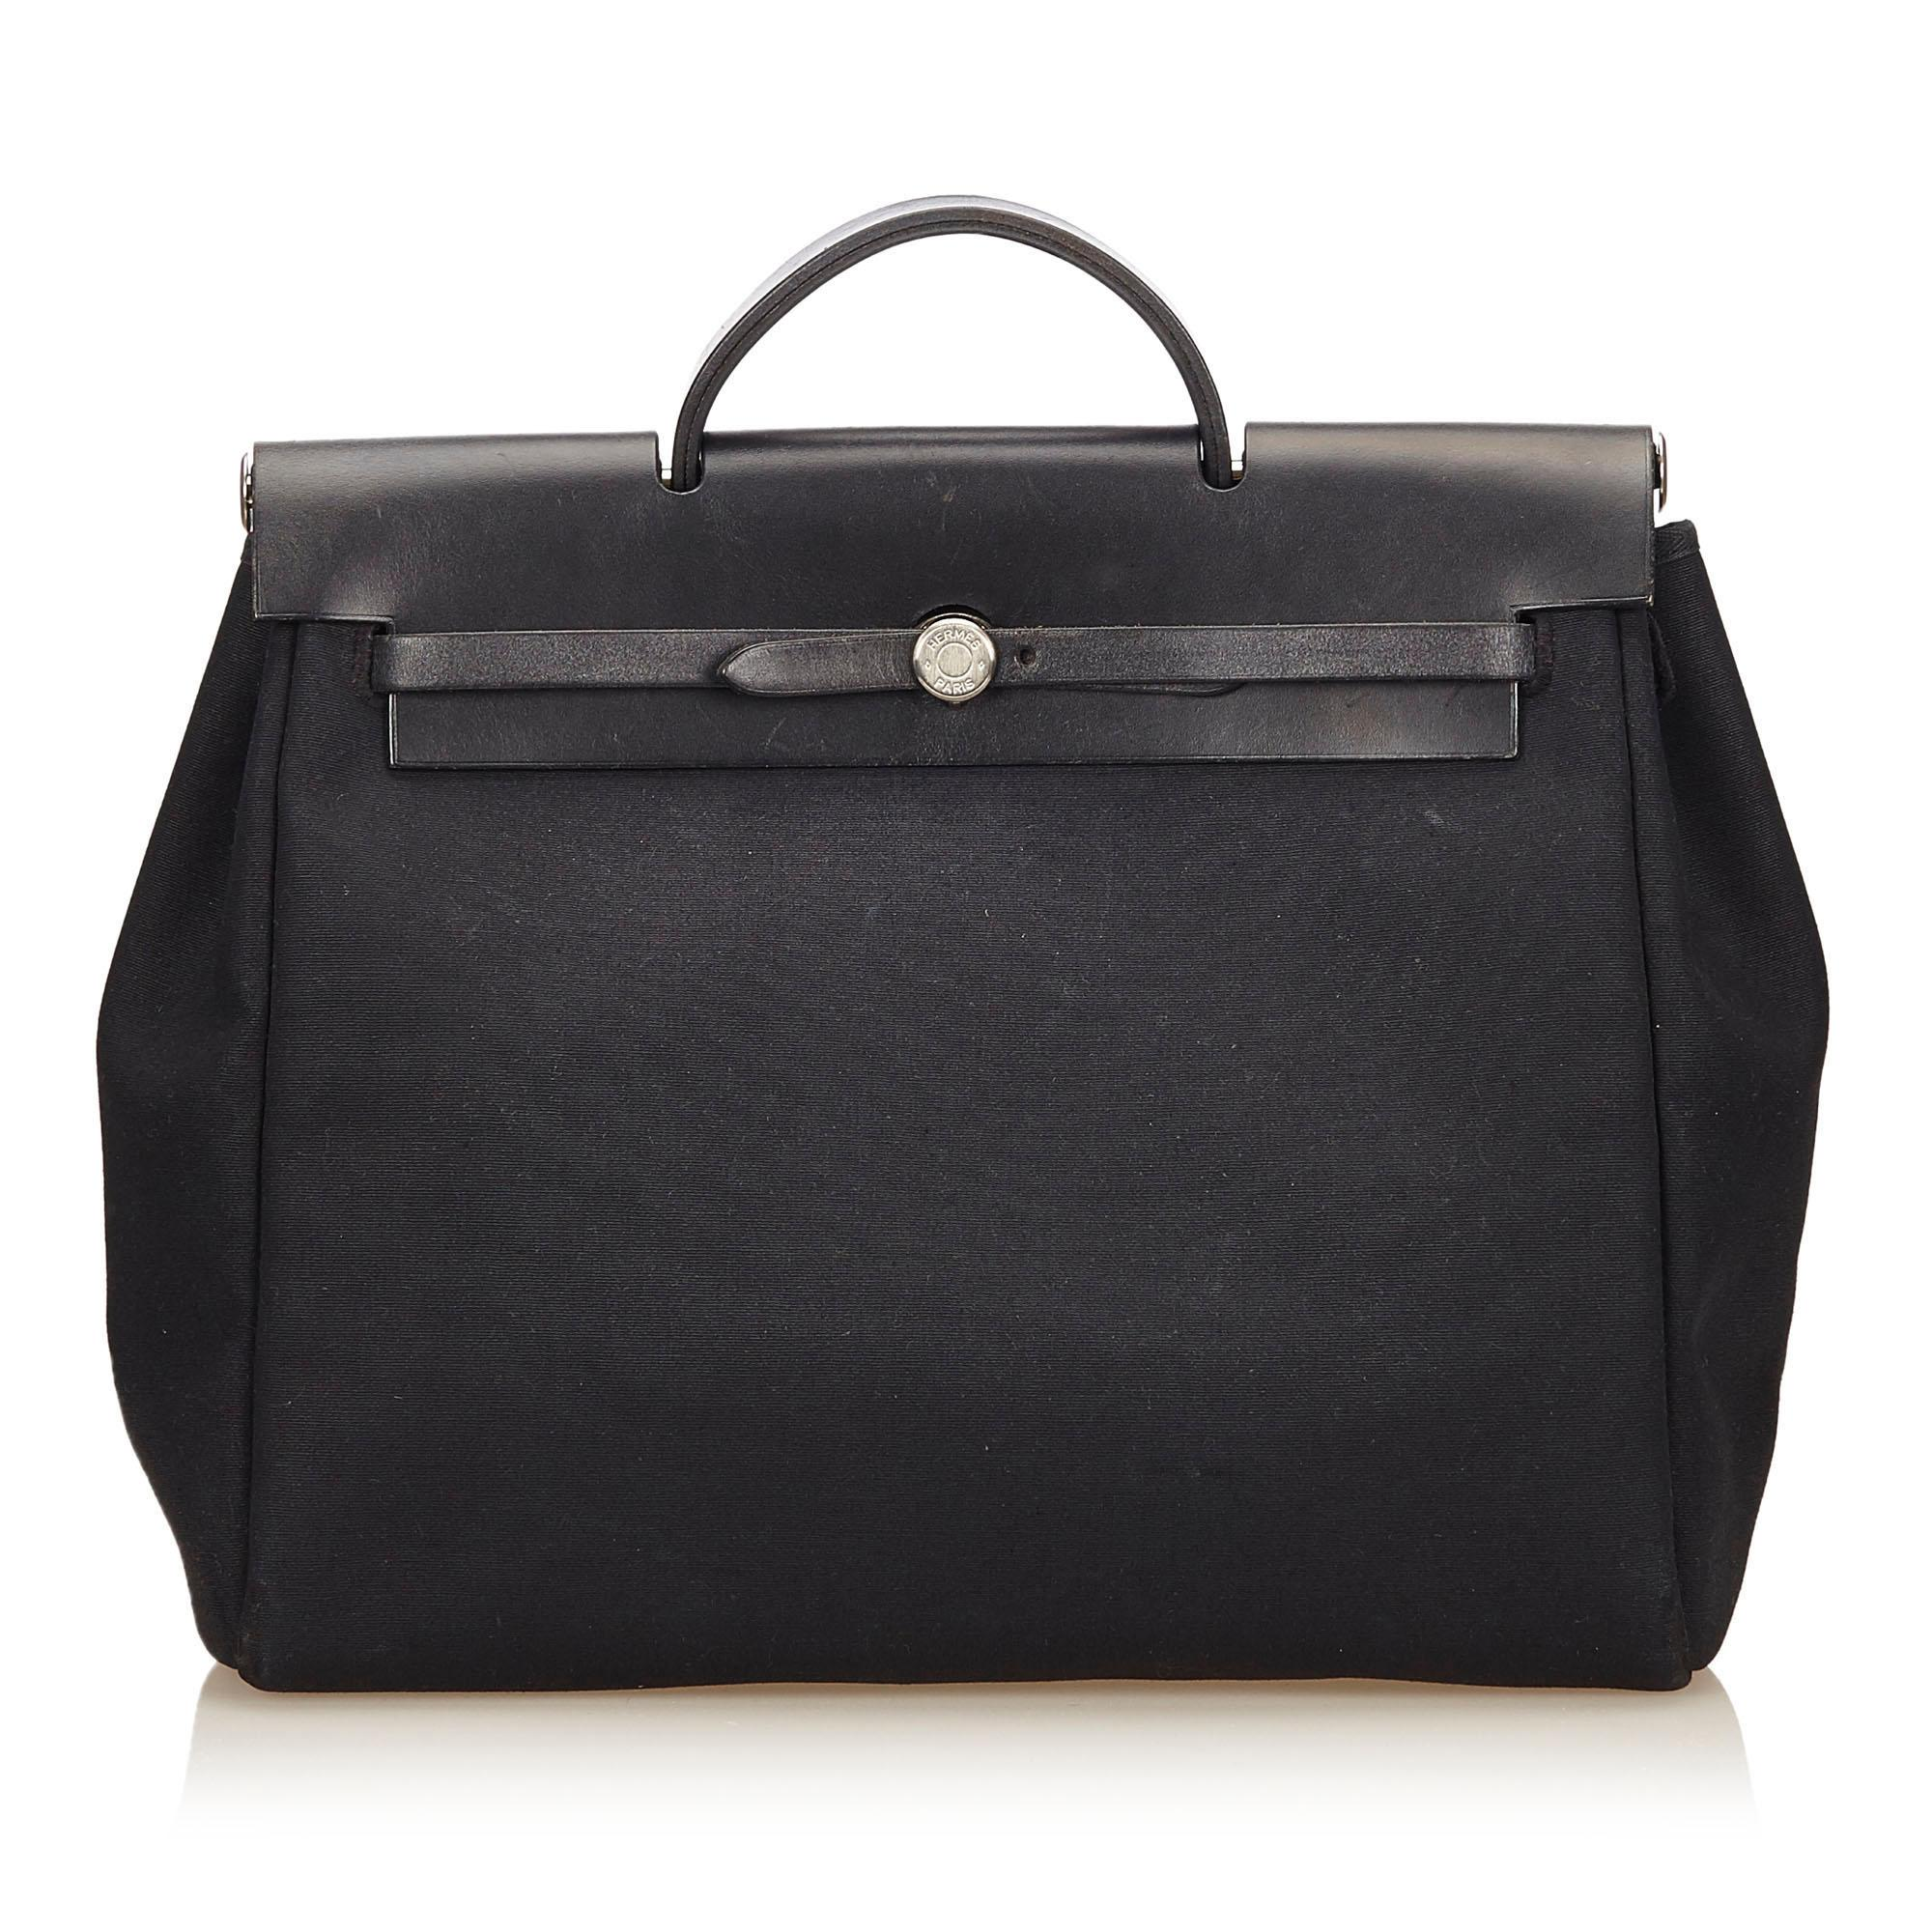 Hermès Weekend/Travel Bags - Up to 90% off at Tradesy